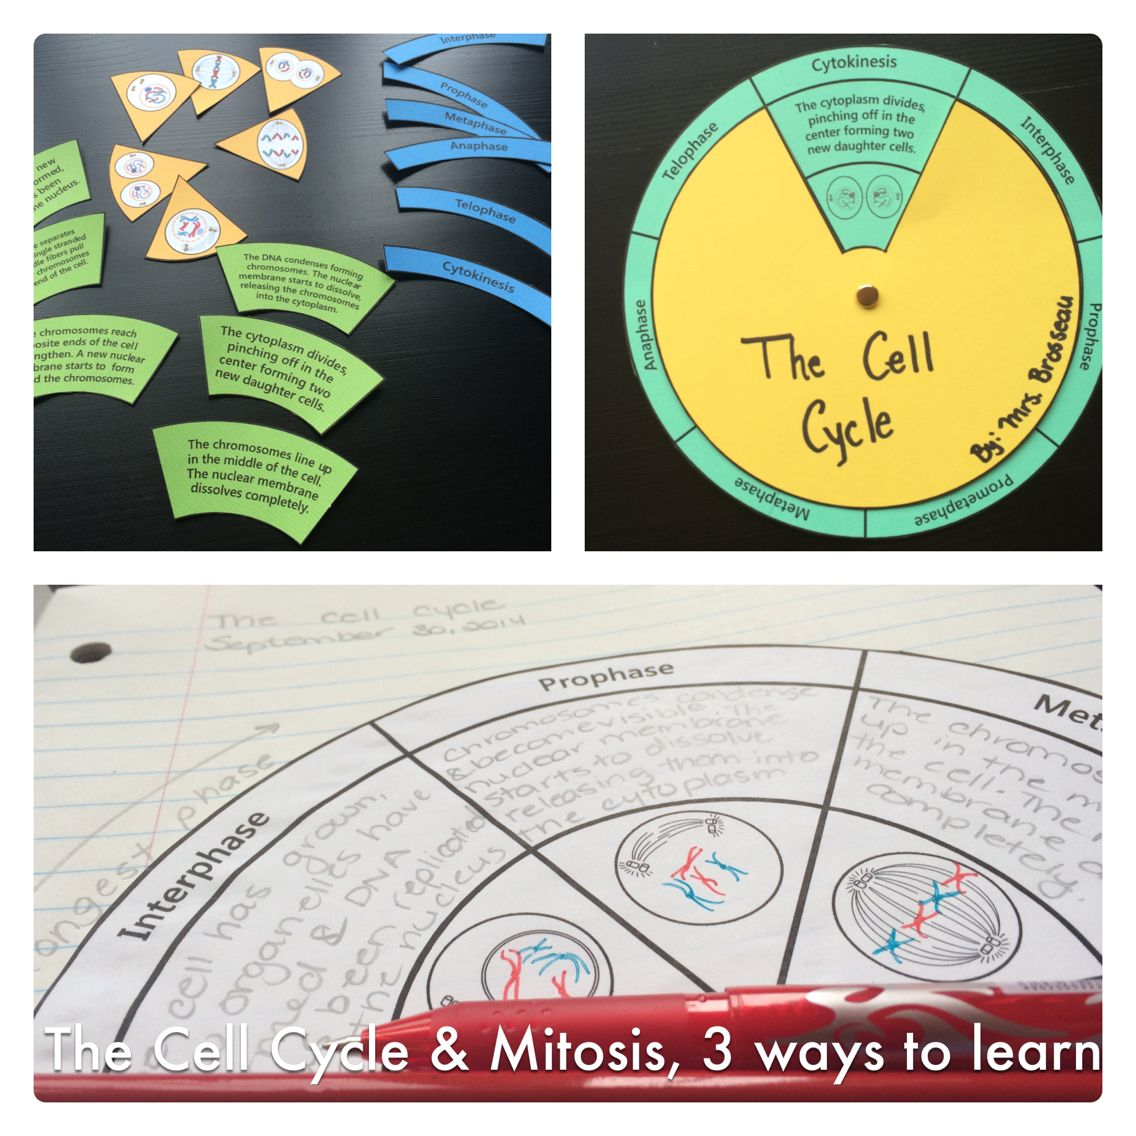 worksheet Cellular Transport And The Cell Cycle Worksheet learn about the cell cycle and mitosis with this handy resource that works 3 ways